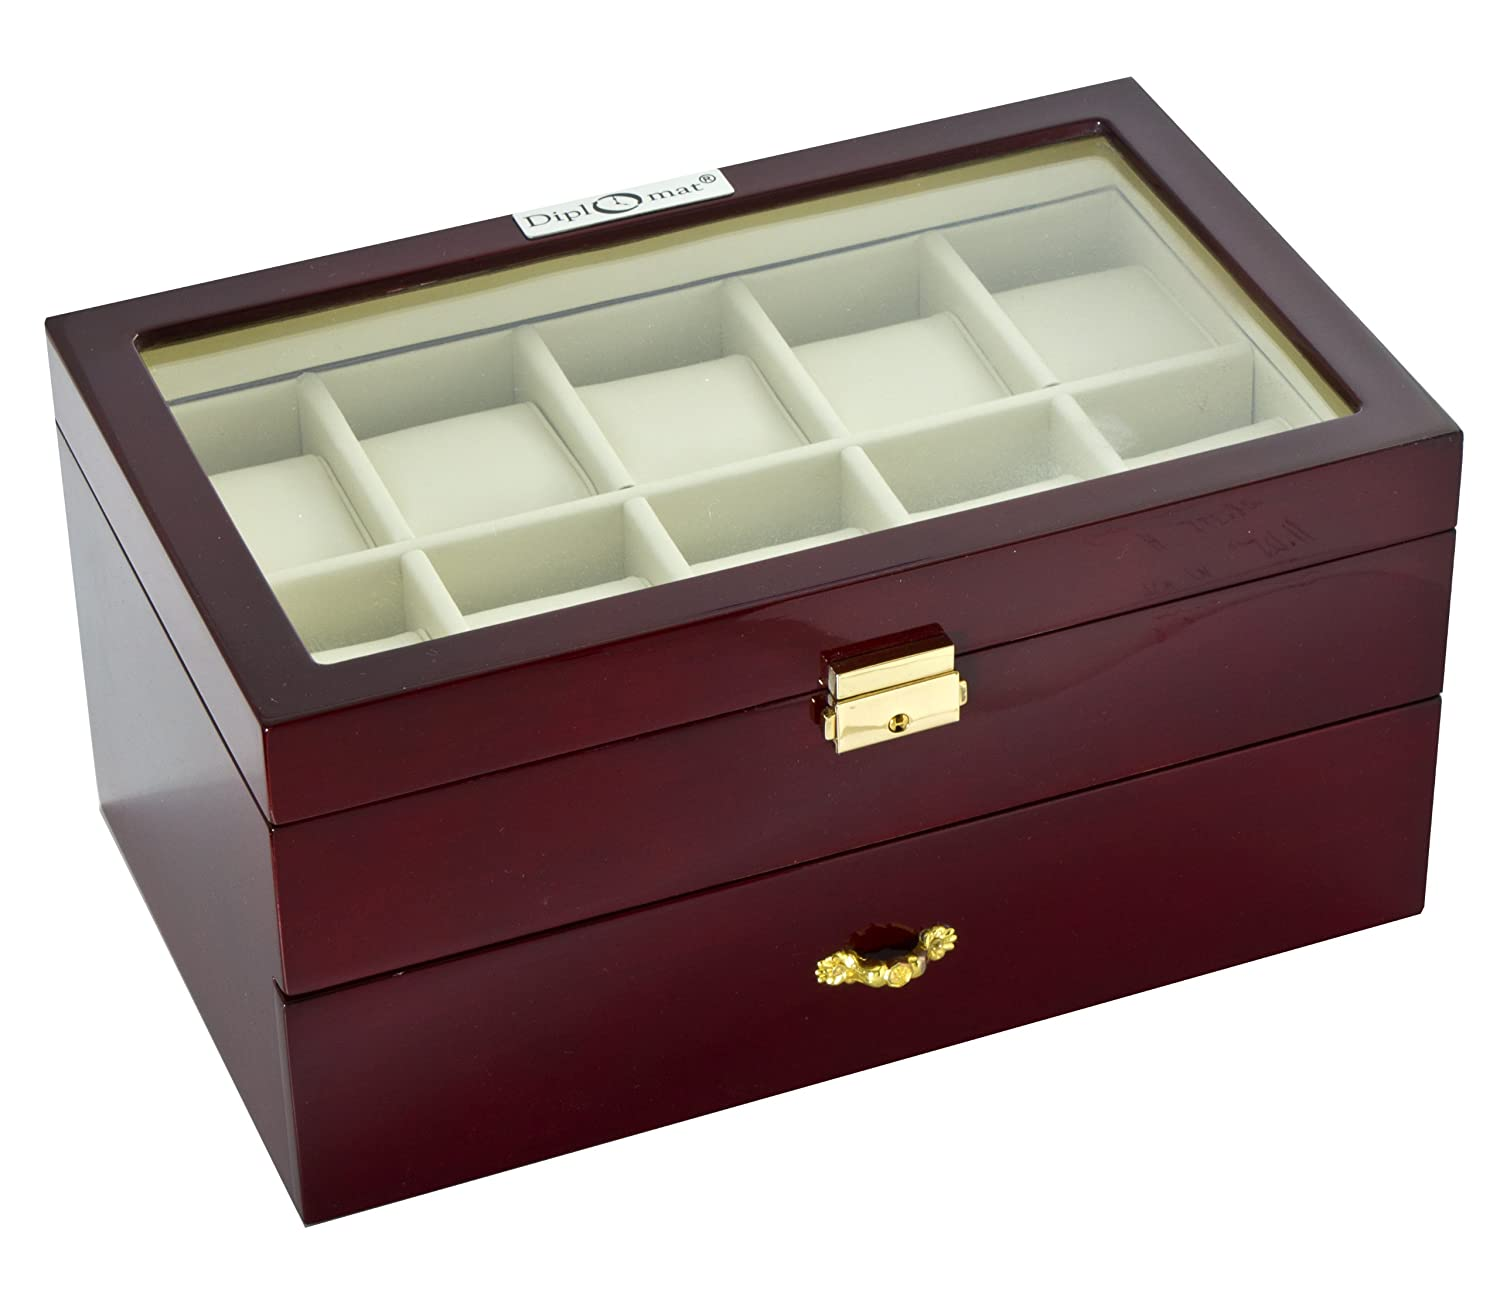 Amazon.com Diplomat 31-57714 Cherry Wood Finish with Clear Top and Cream Leather Interior 20 Watch Storage Case Watches  sc 1 st  Amazon.com & Amazon.com: Diplomat 31-57714 Cherry Wood Finish with Clear Top and ...